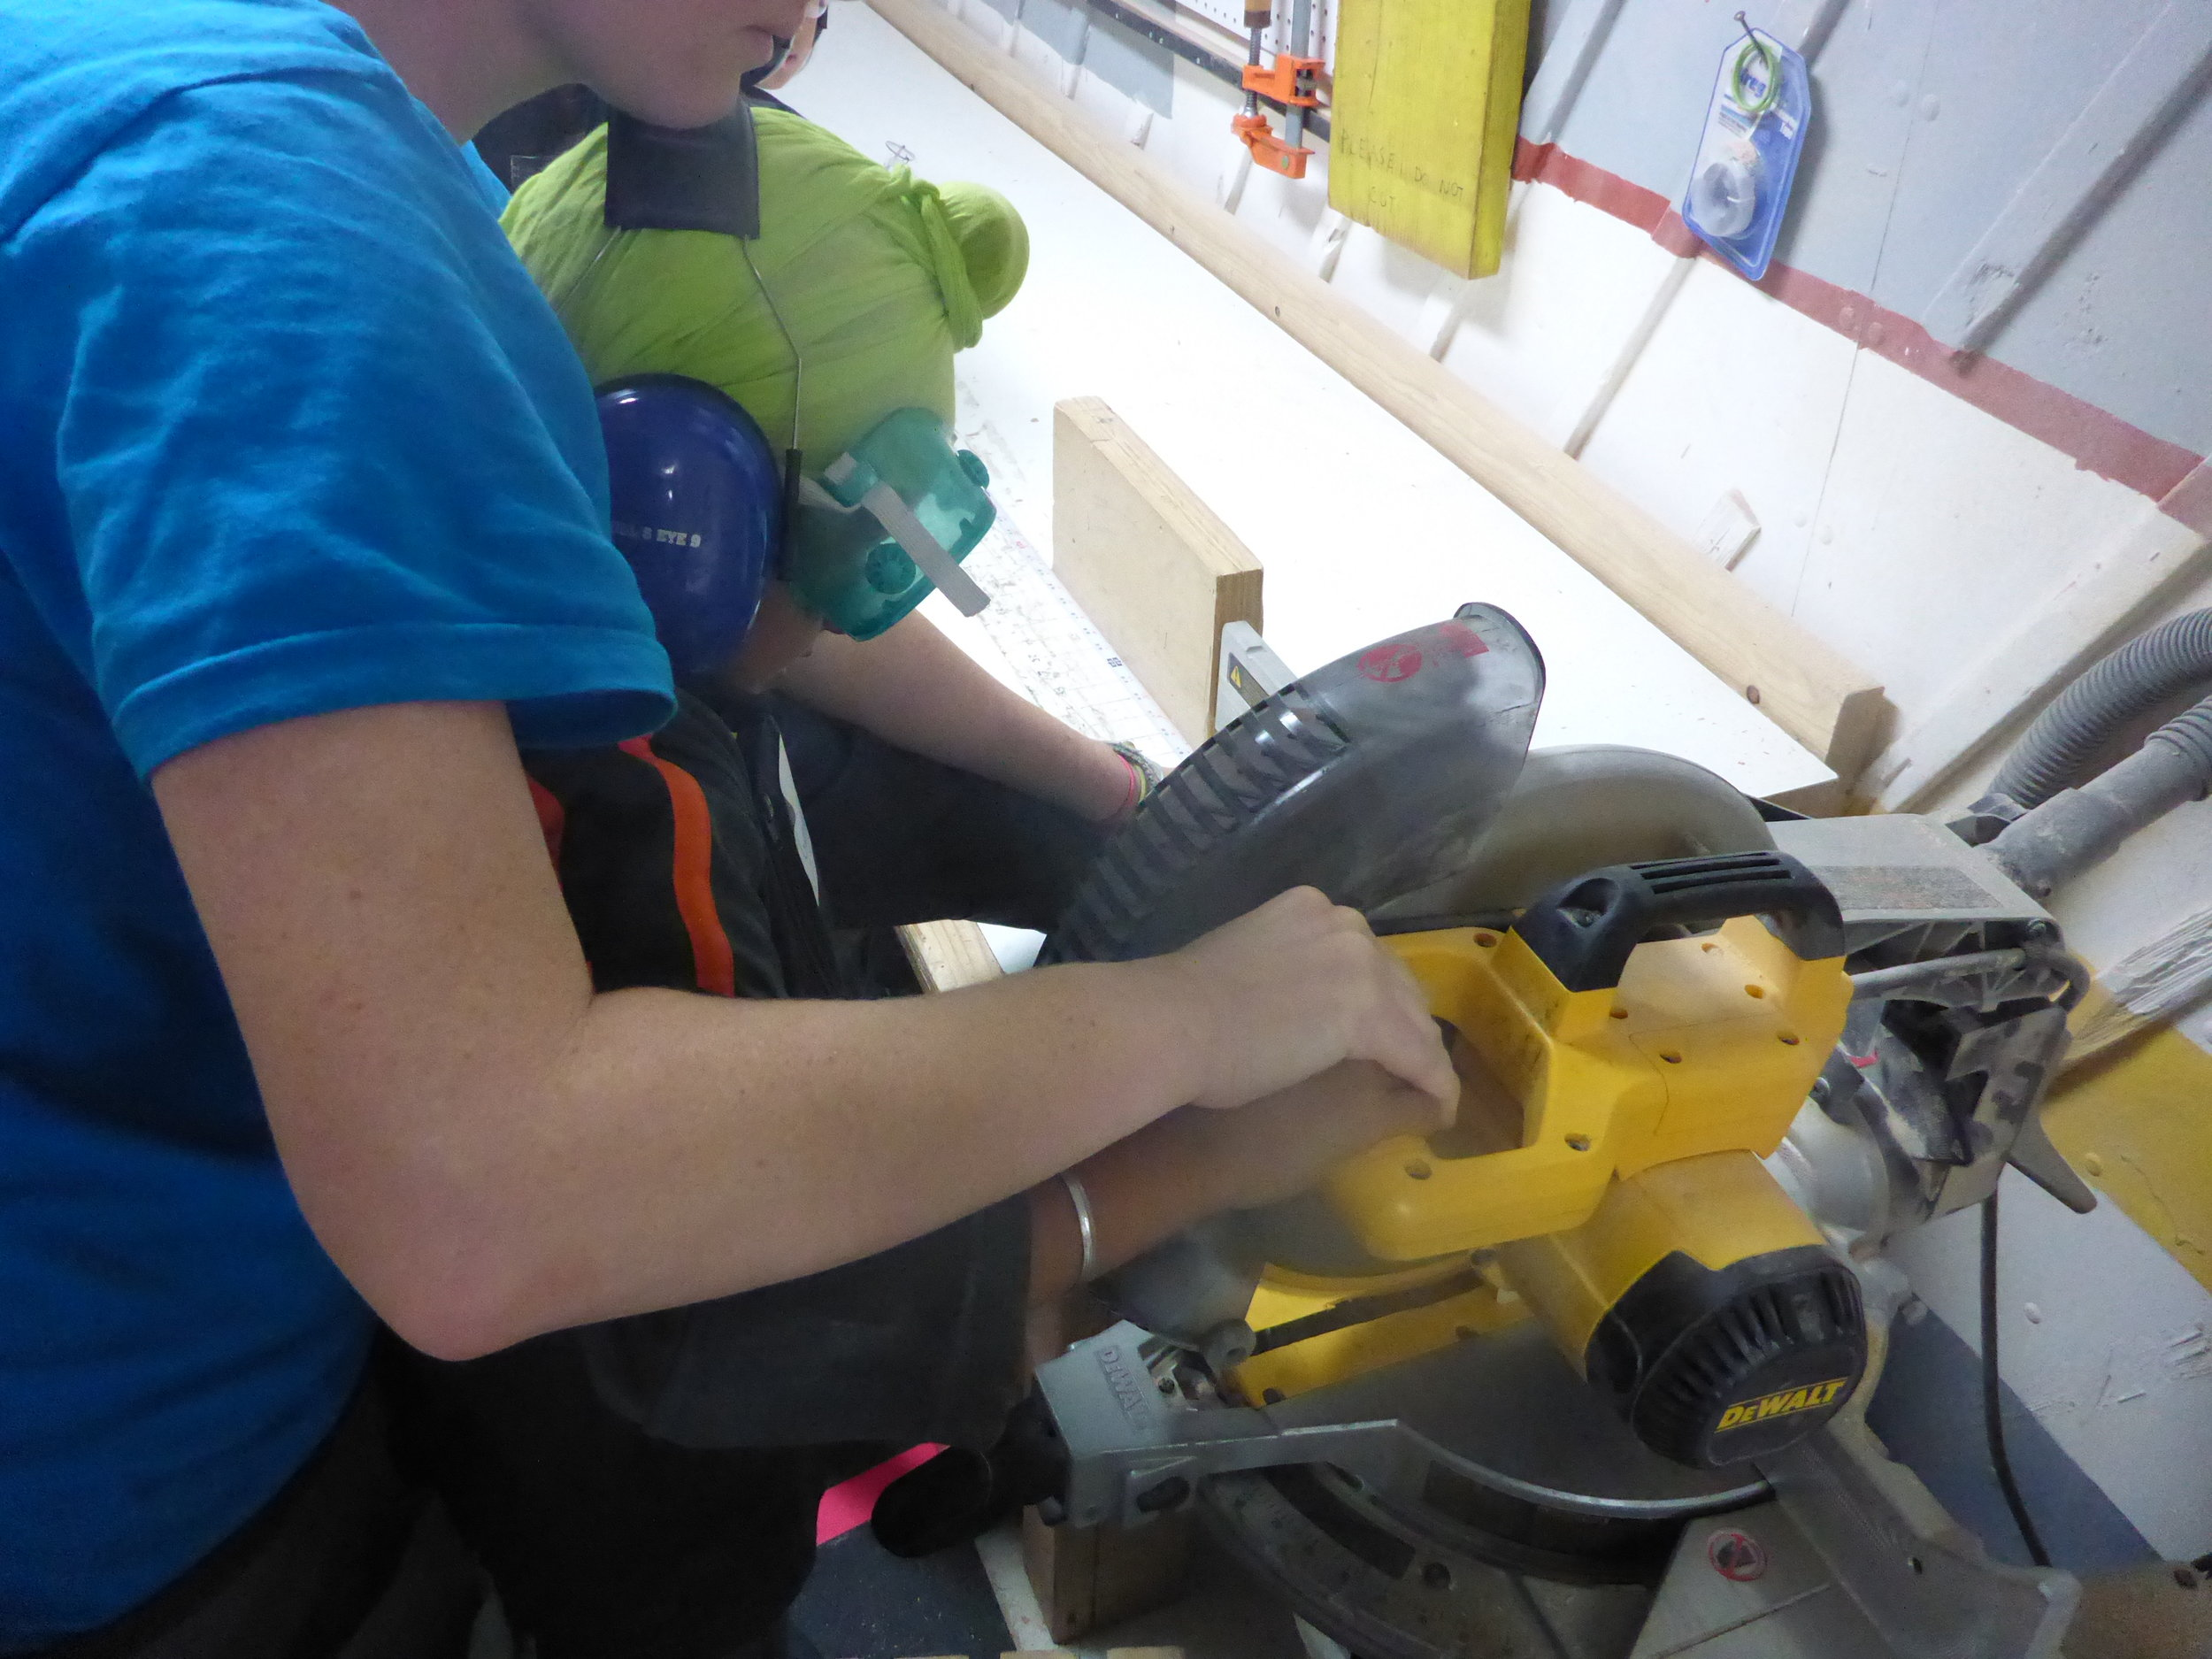 Lindsay helps Gurneet get to know what will become his favorite tool of the day - the Chopsaw!